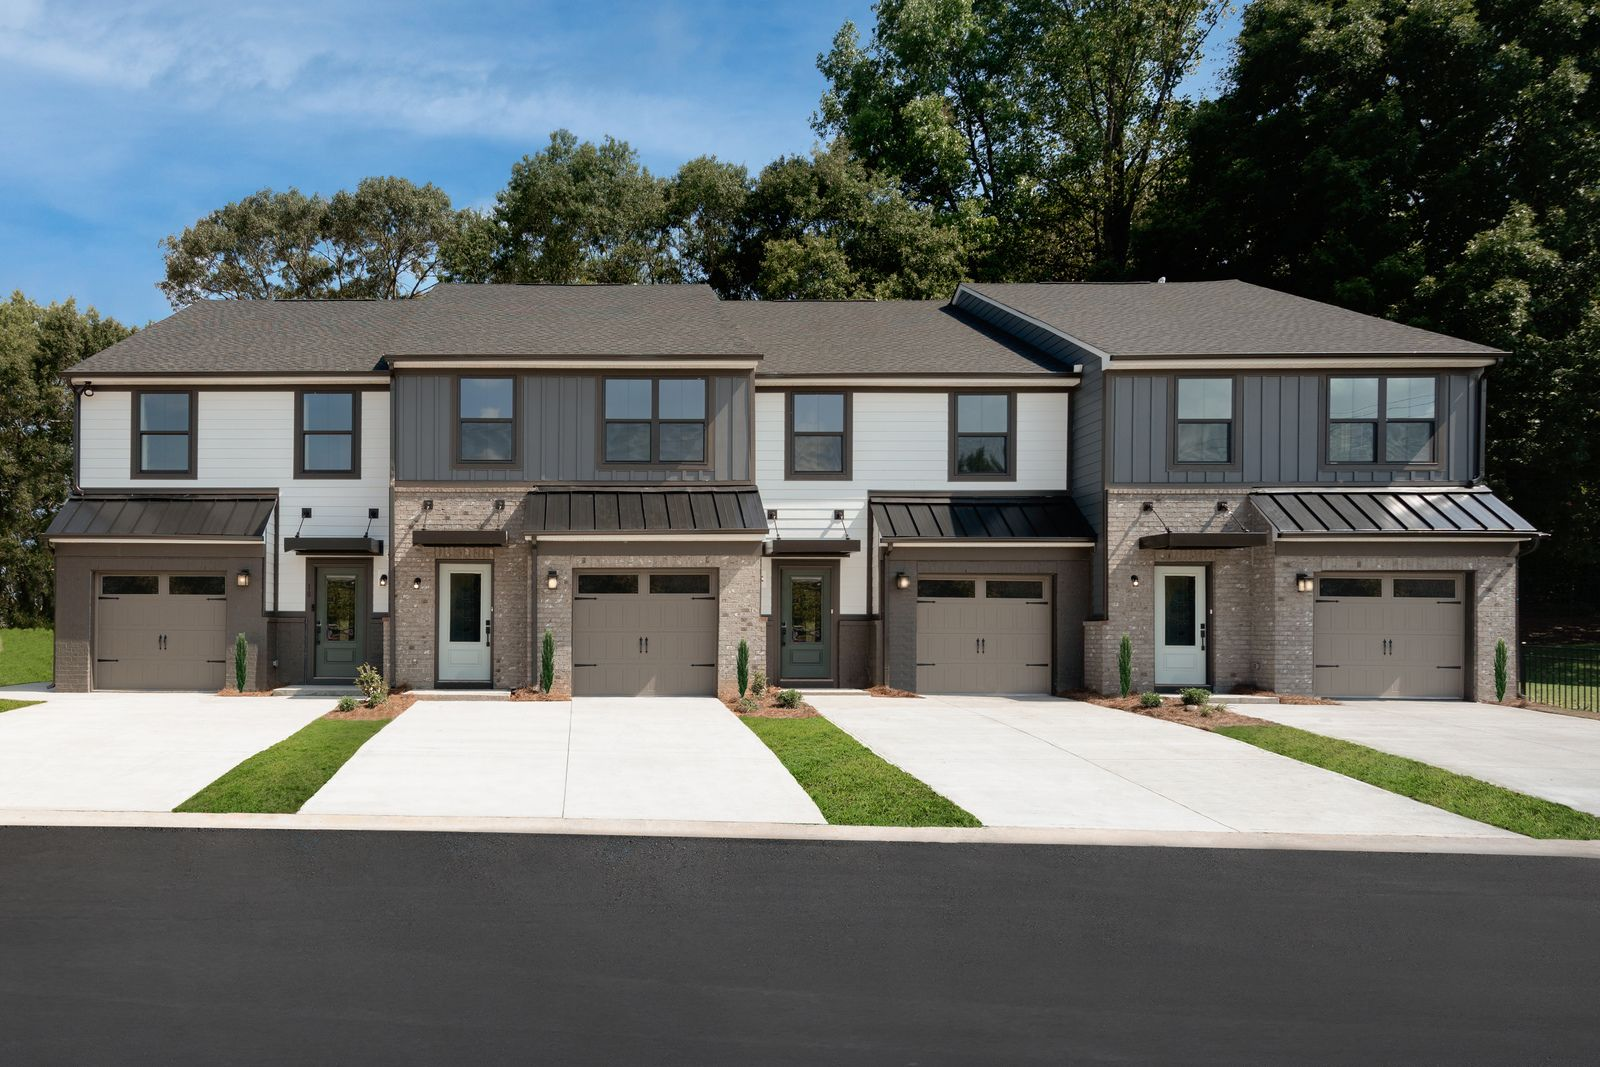 Own a new, modern, low-maintenance townhome at the best value in the heart of Mauldin.:Expect to enjoy the finer features, finishes, and style in your new home.Schedule a visitto learn more!